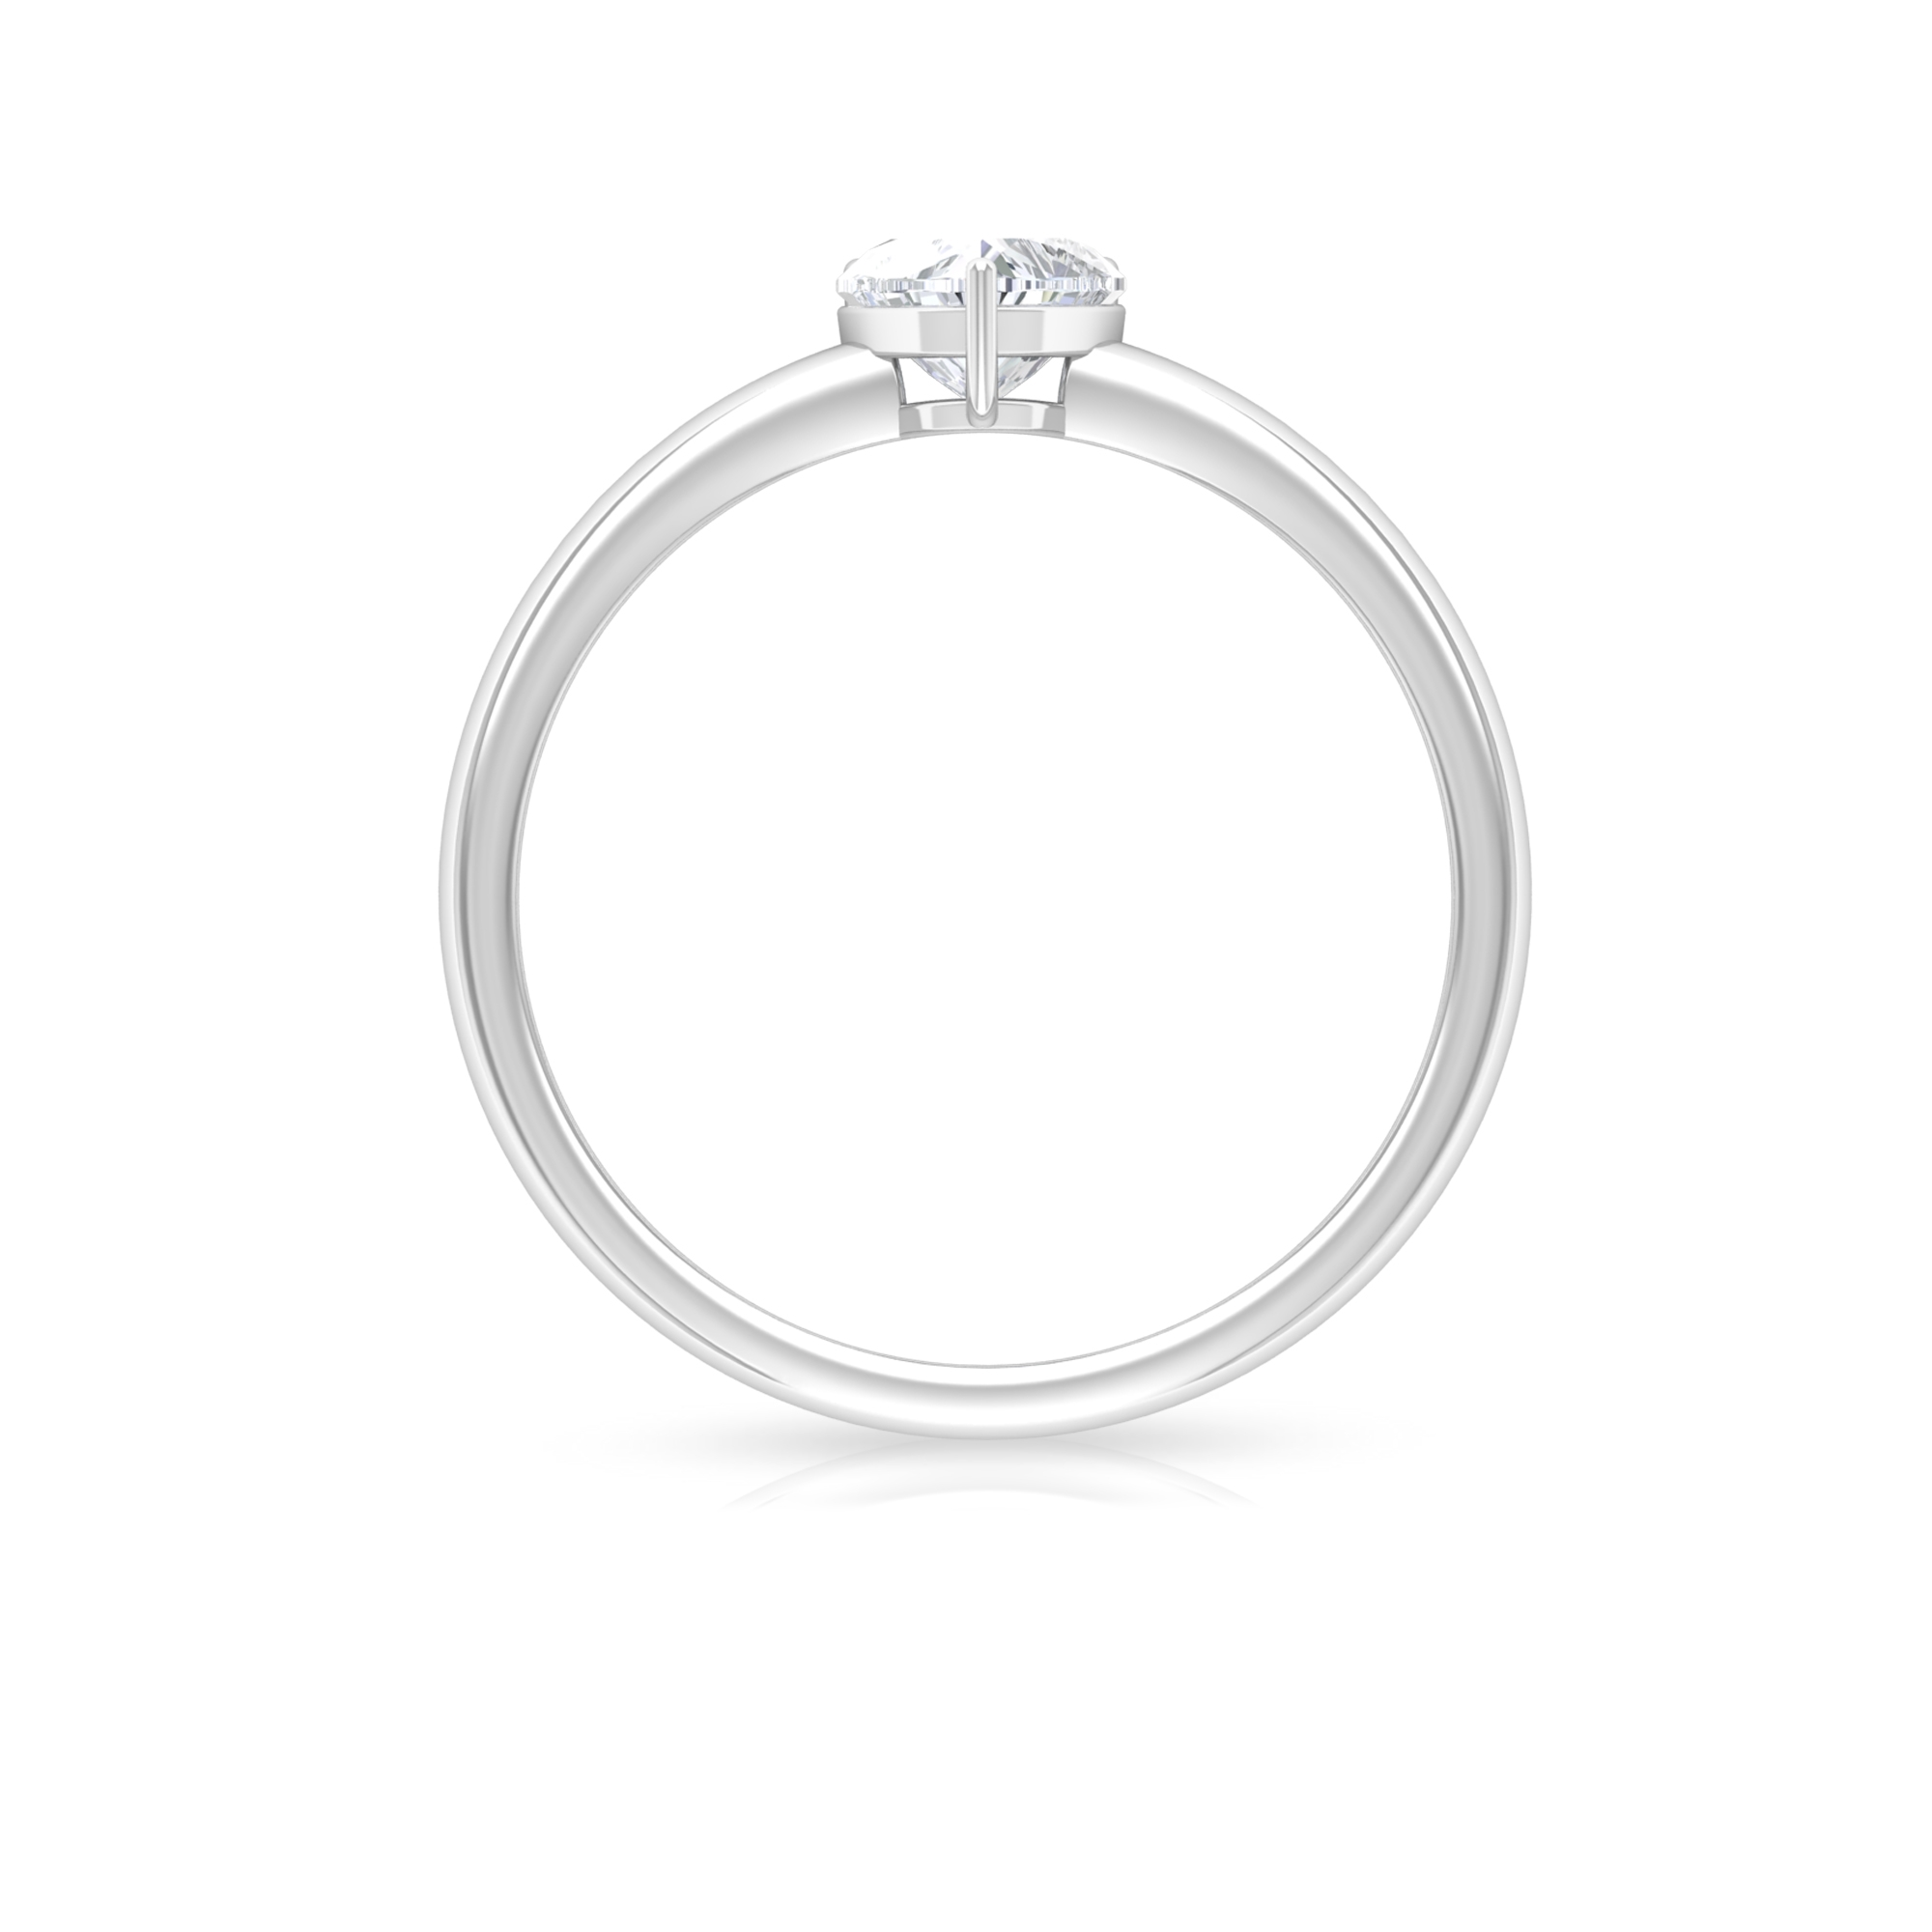 5.40 MM Heart Shape Diamond Solitaire Ring in 3 Prong Setting